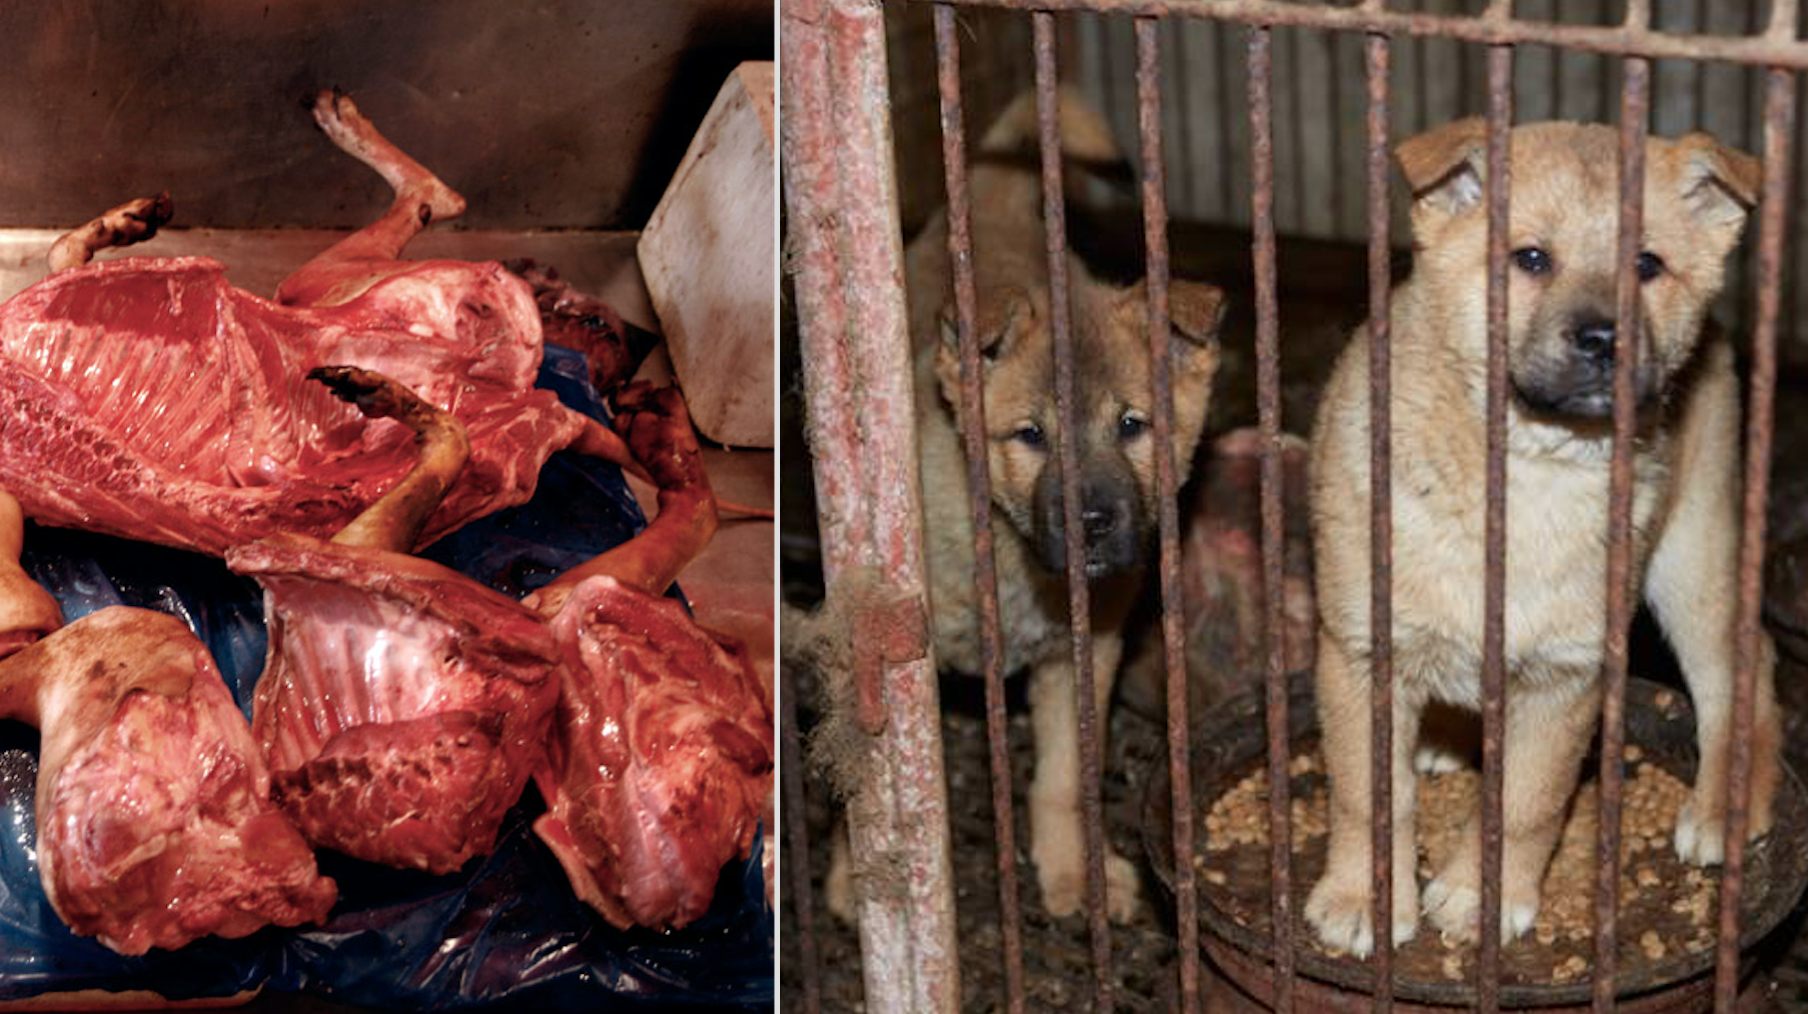 In South Korea, dogs around 2.5 million dogs are killed for their flesh every year.